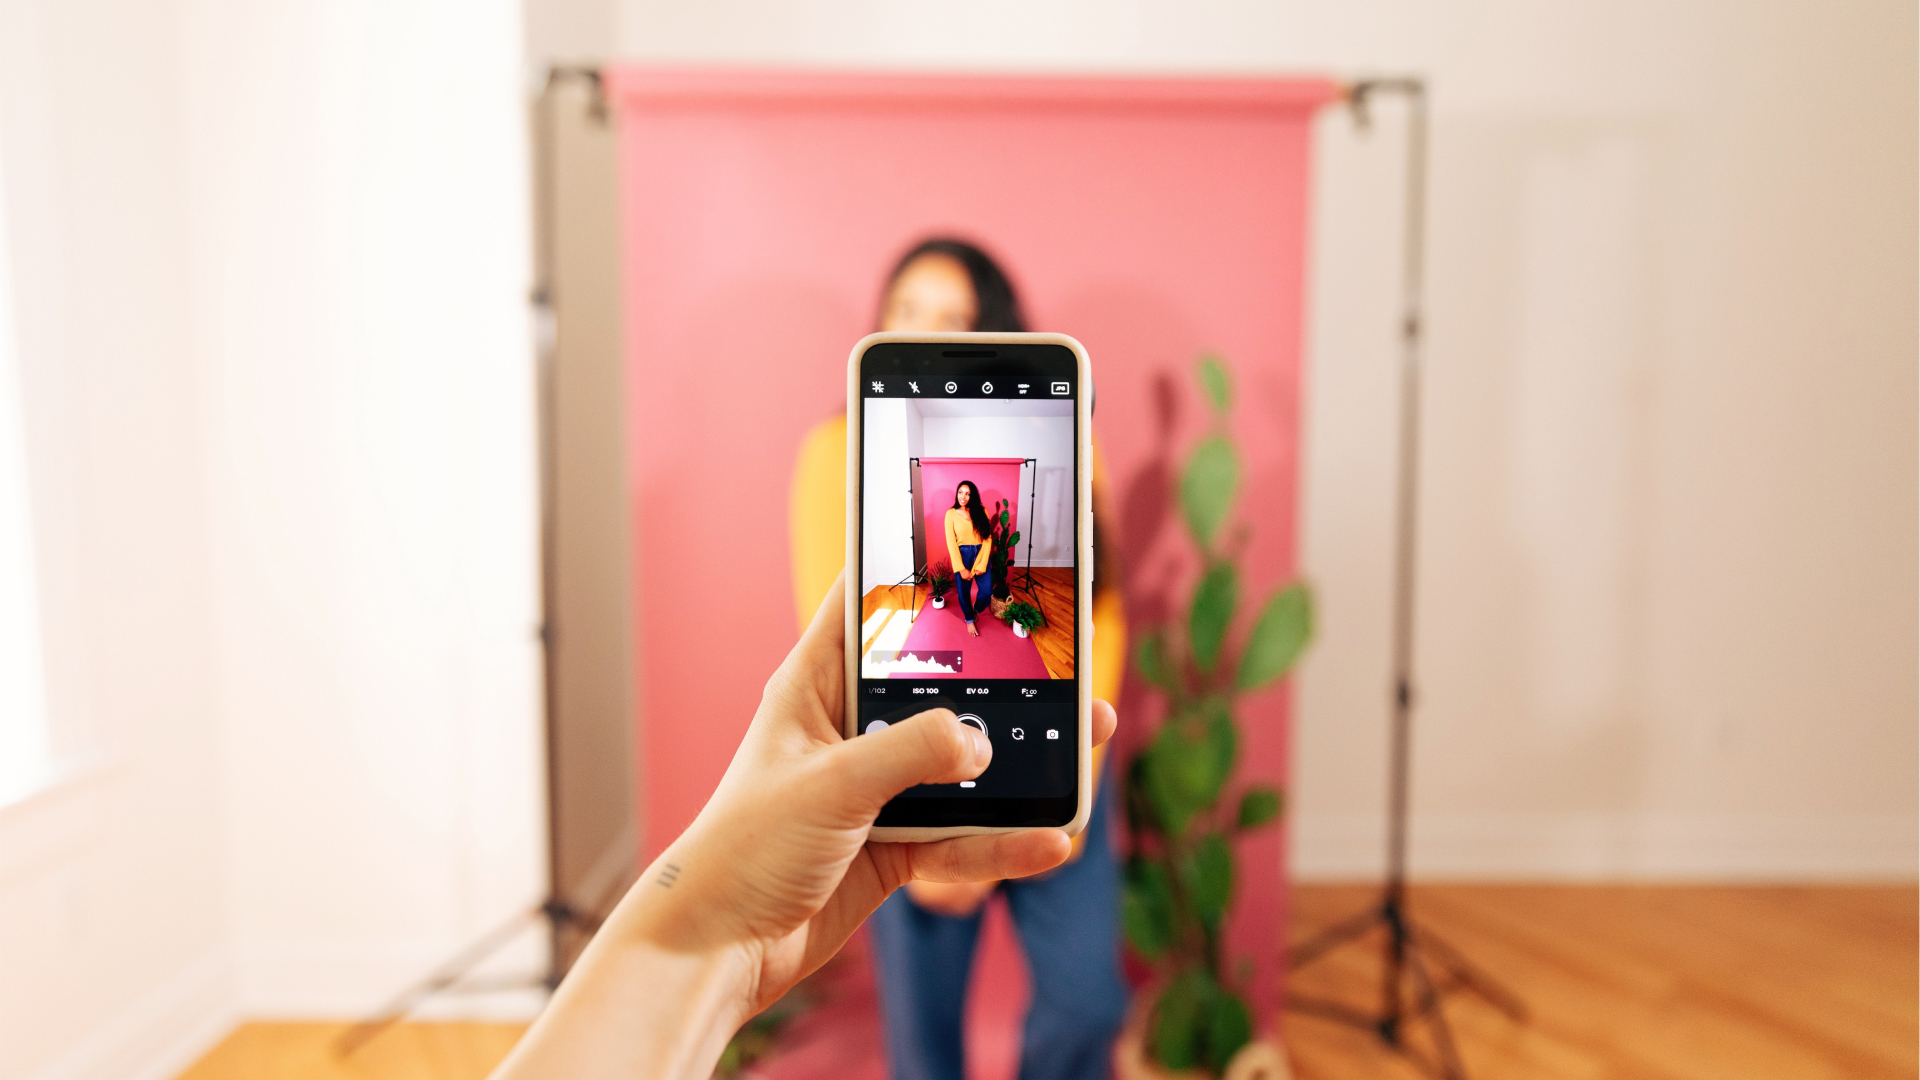 The Moment Pro Camera app shooting portrait photography on a Pixel